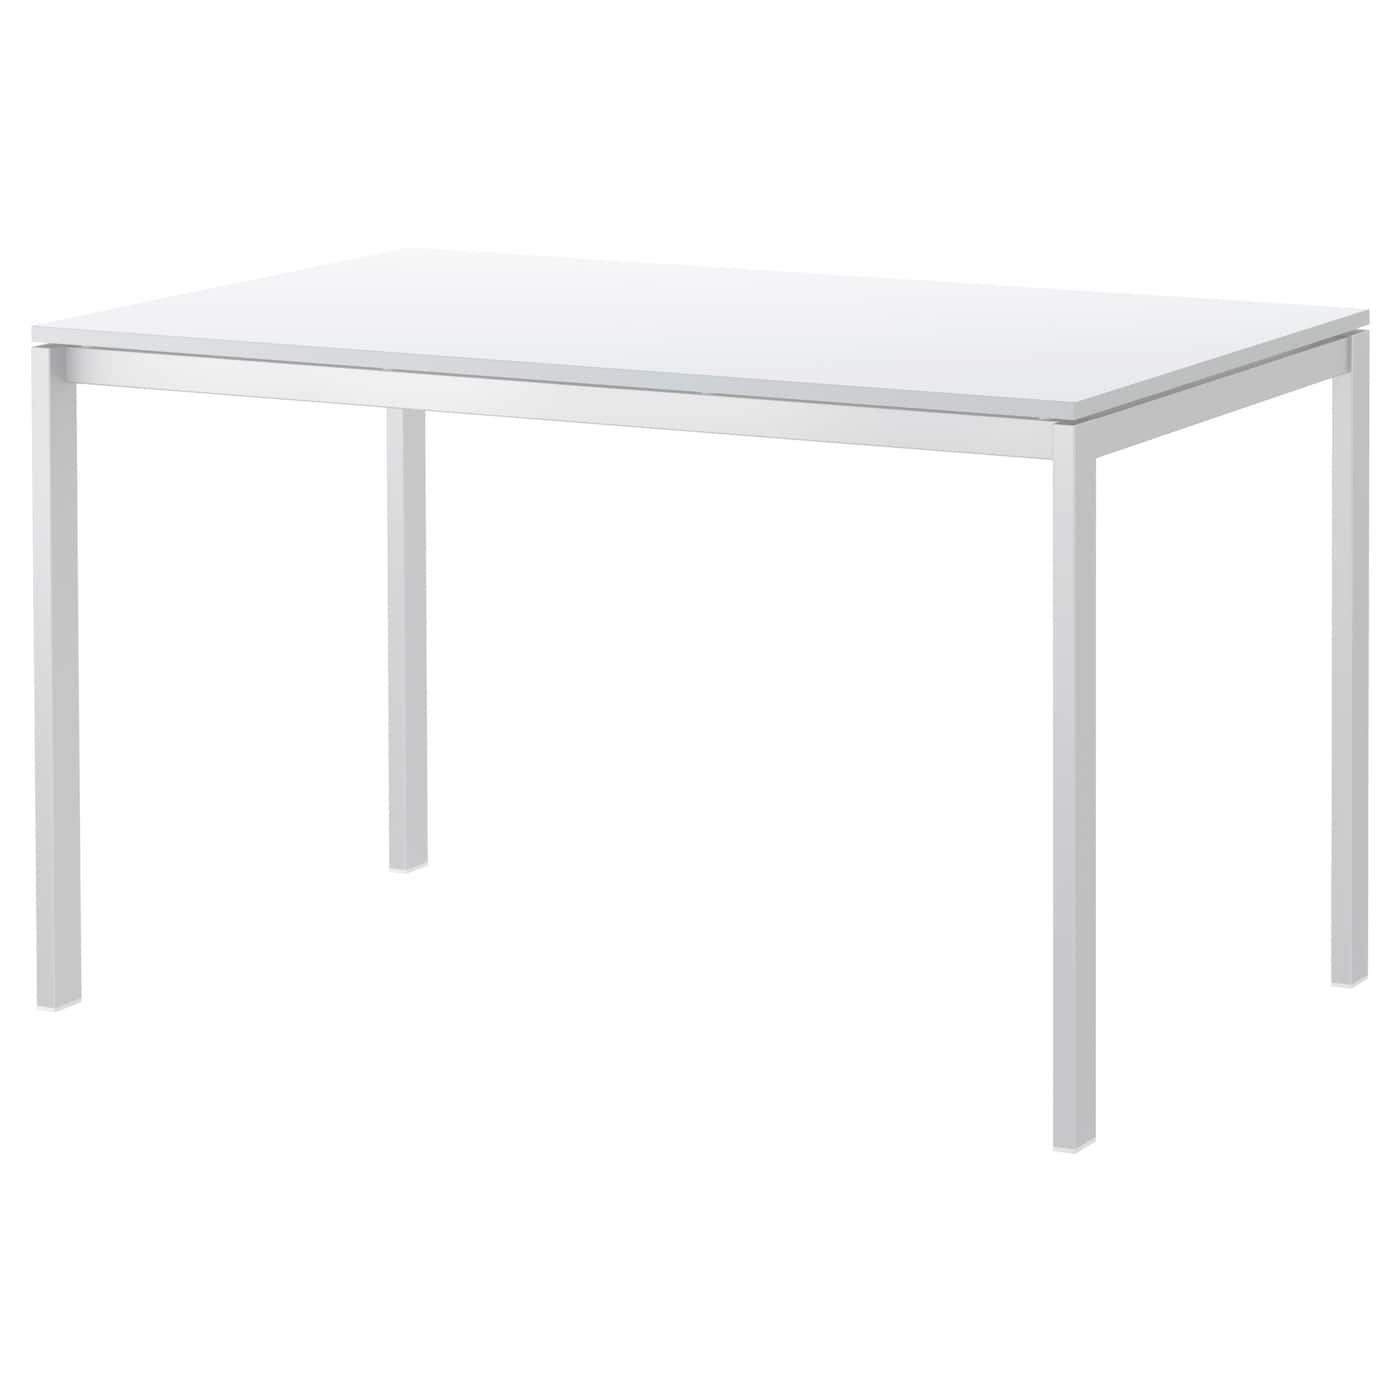 IKEA MELLTORP table Seats 4.